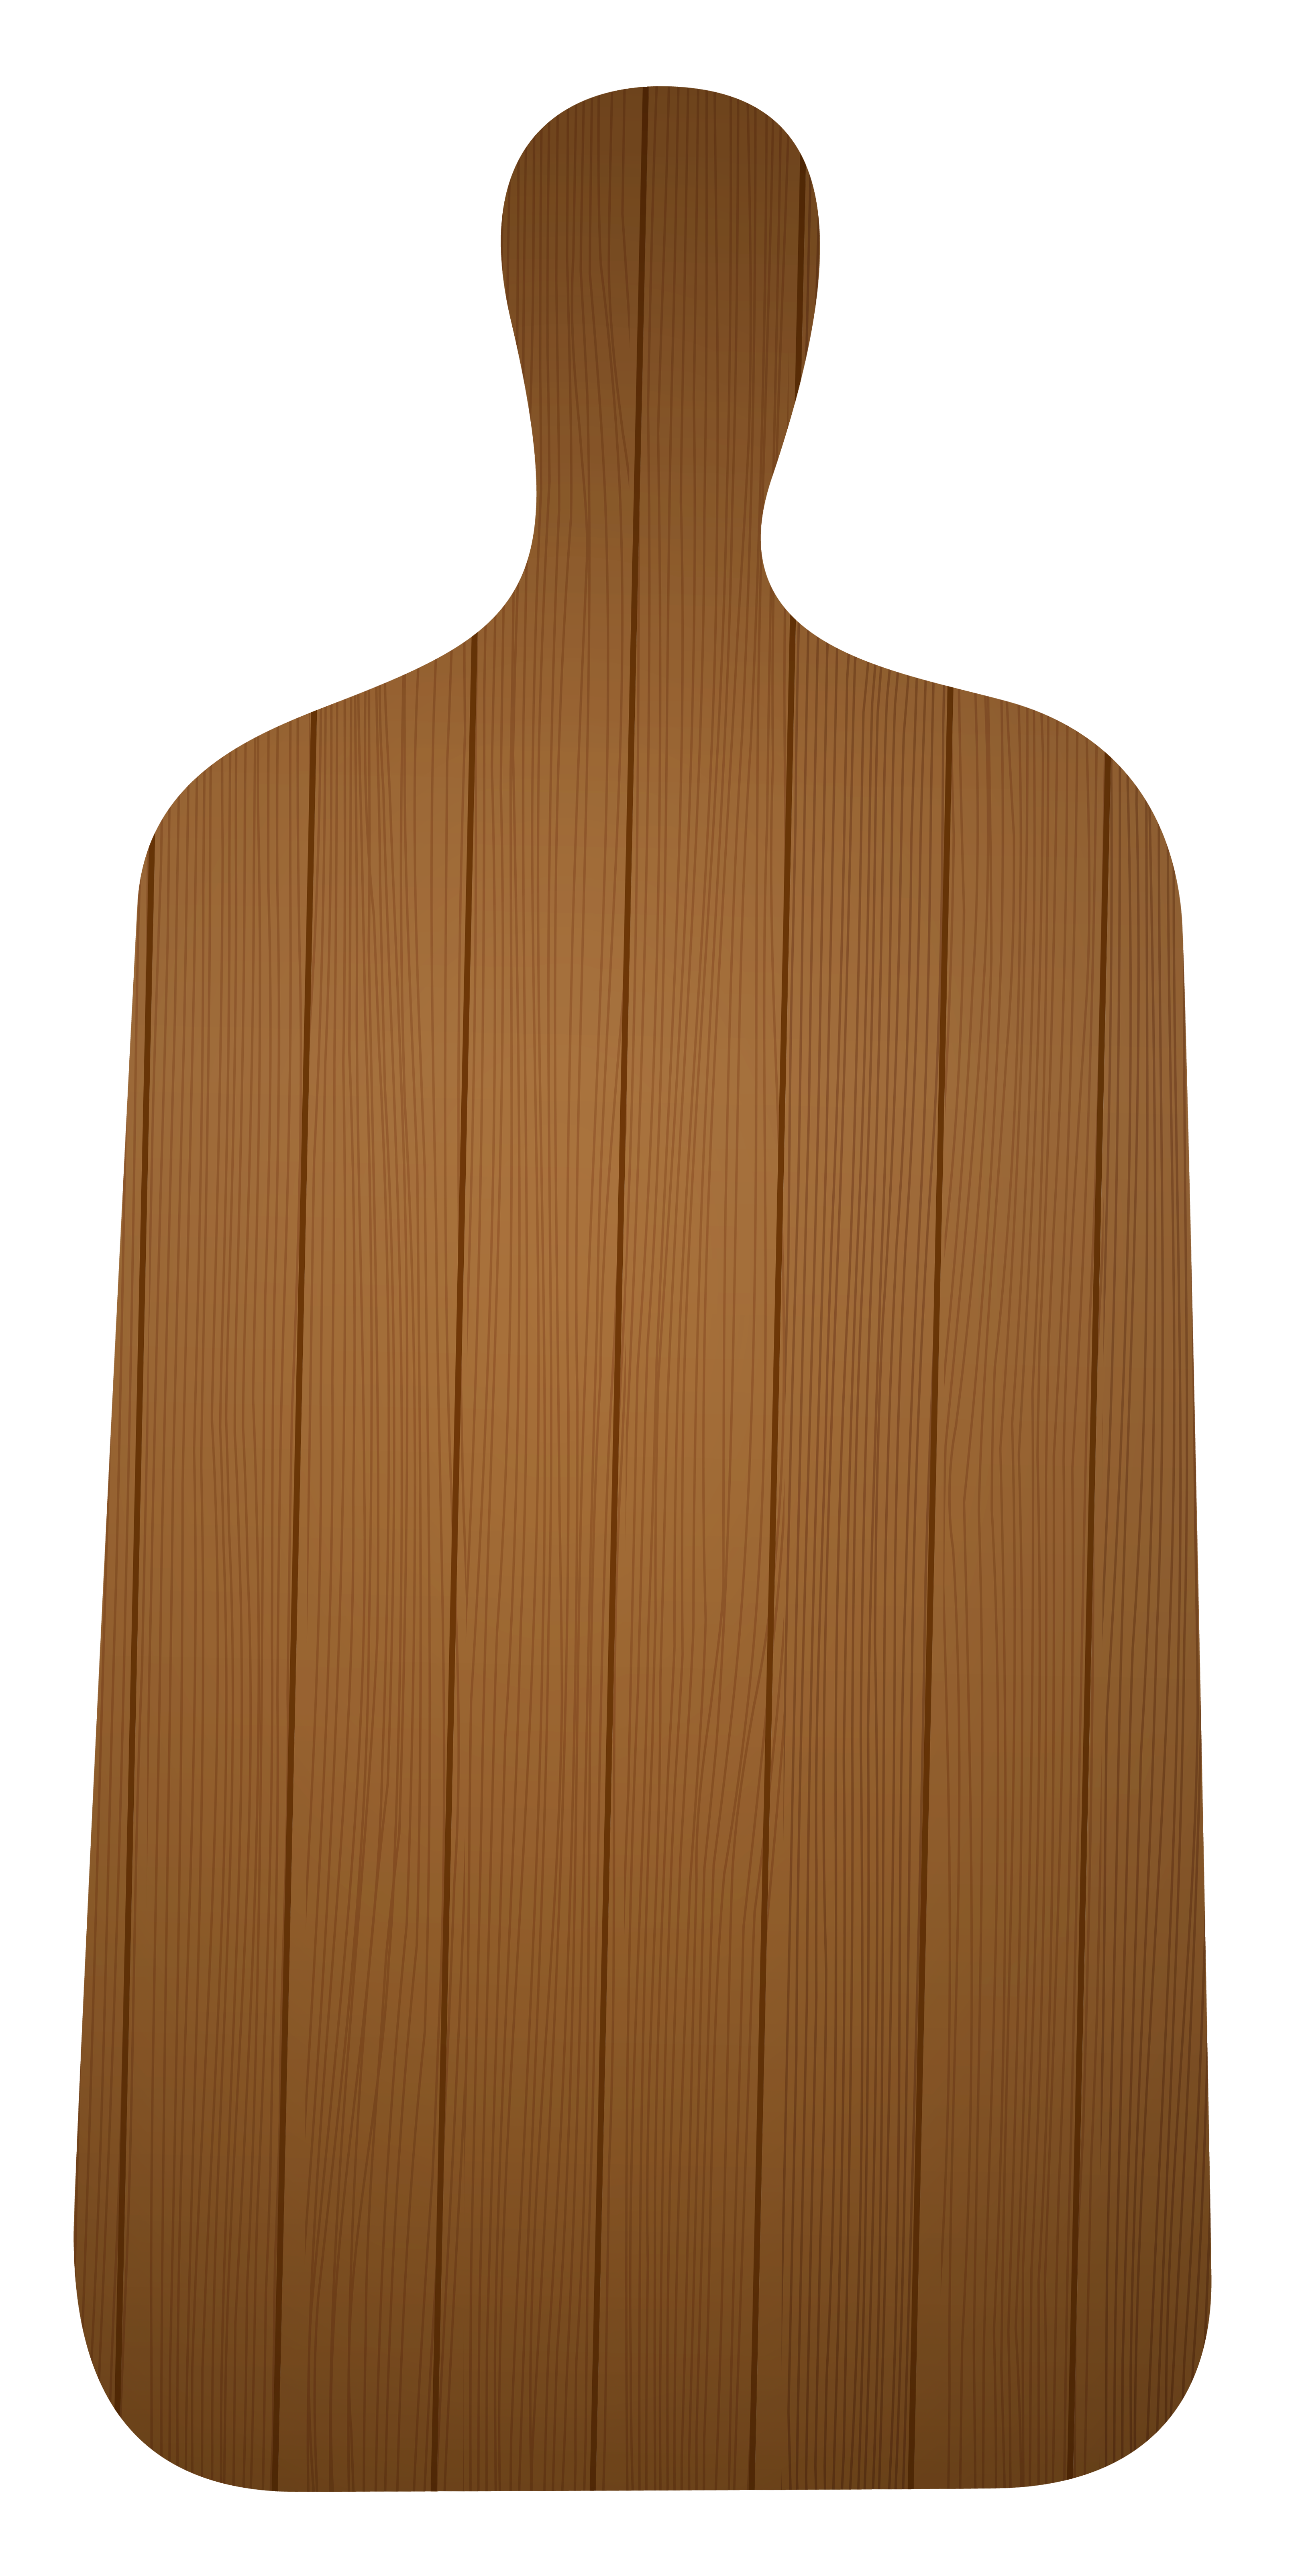 Tool clipart tool chest. Wooden cutting boards png